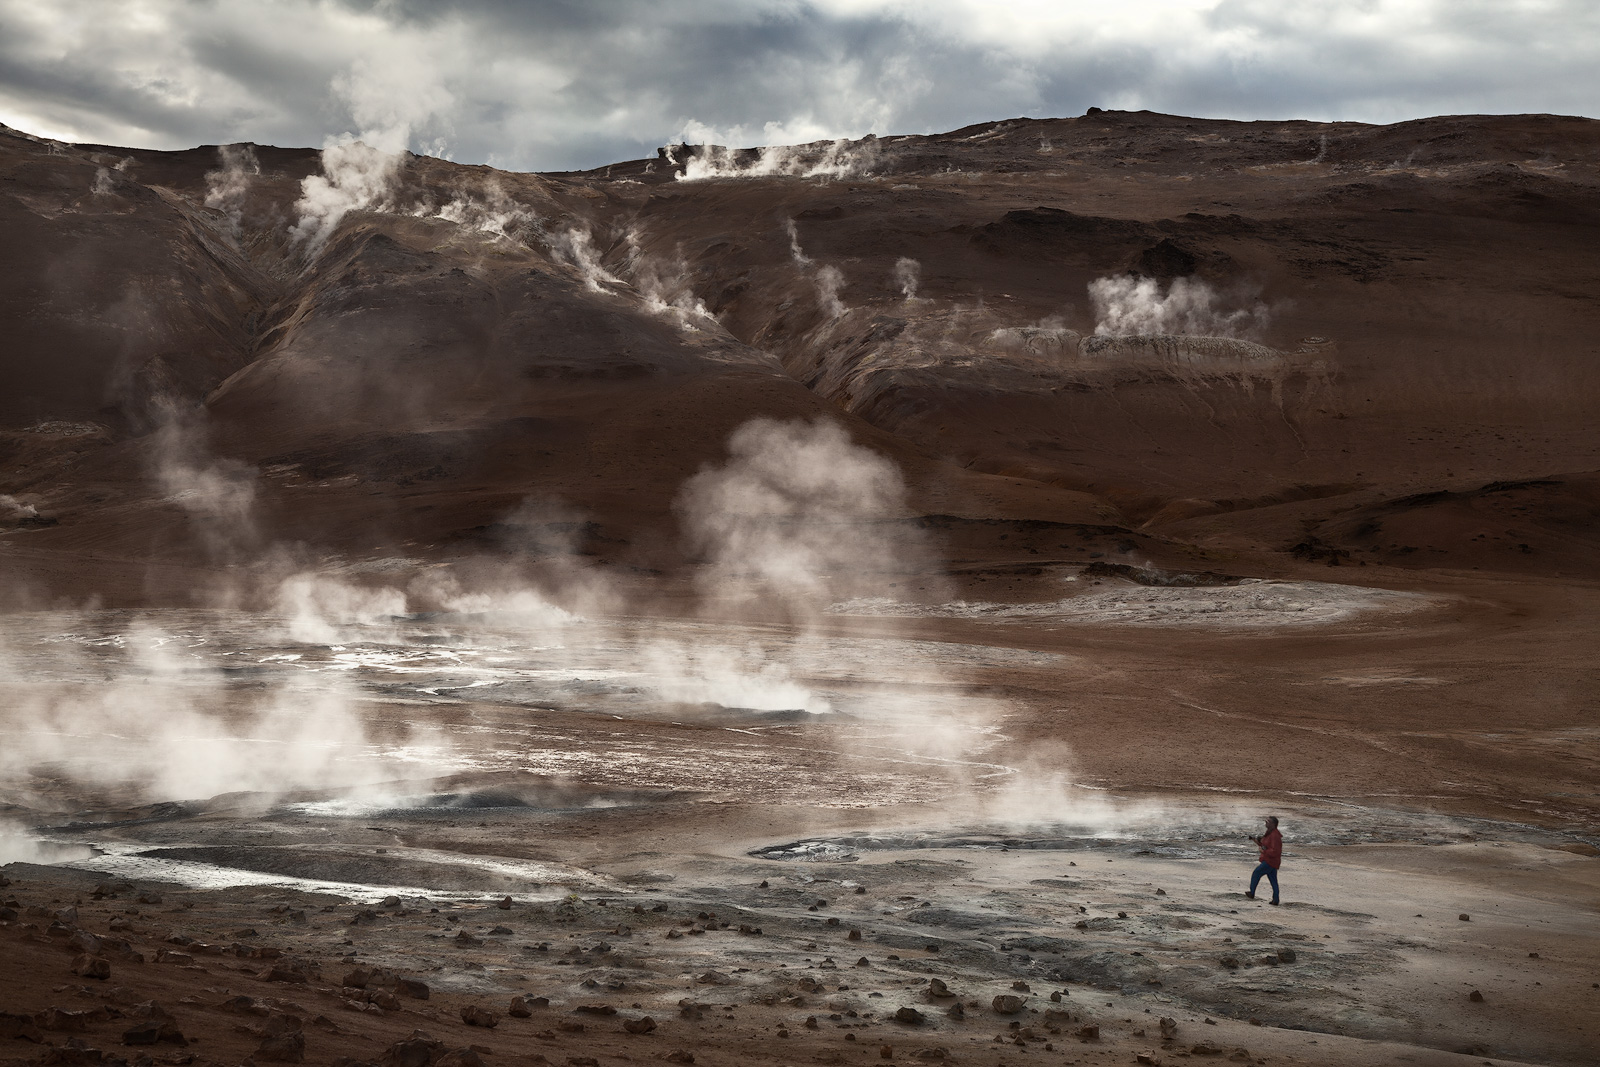 A lone hiker walks through one of Iceland's geothermal fields